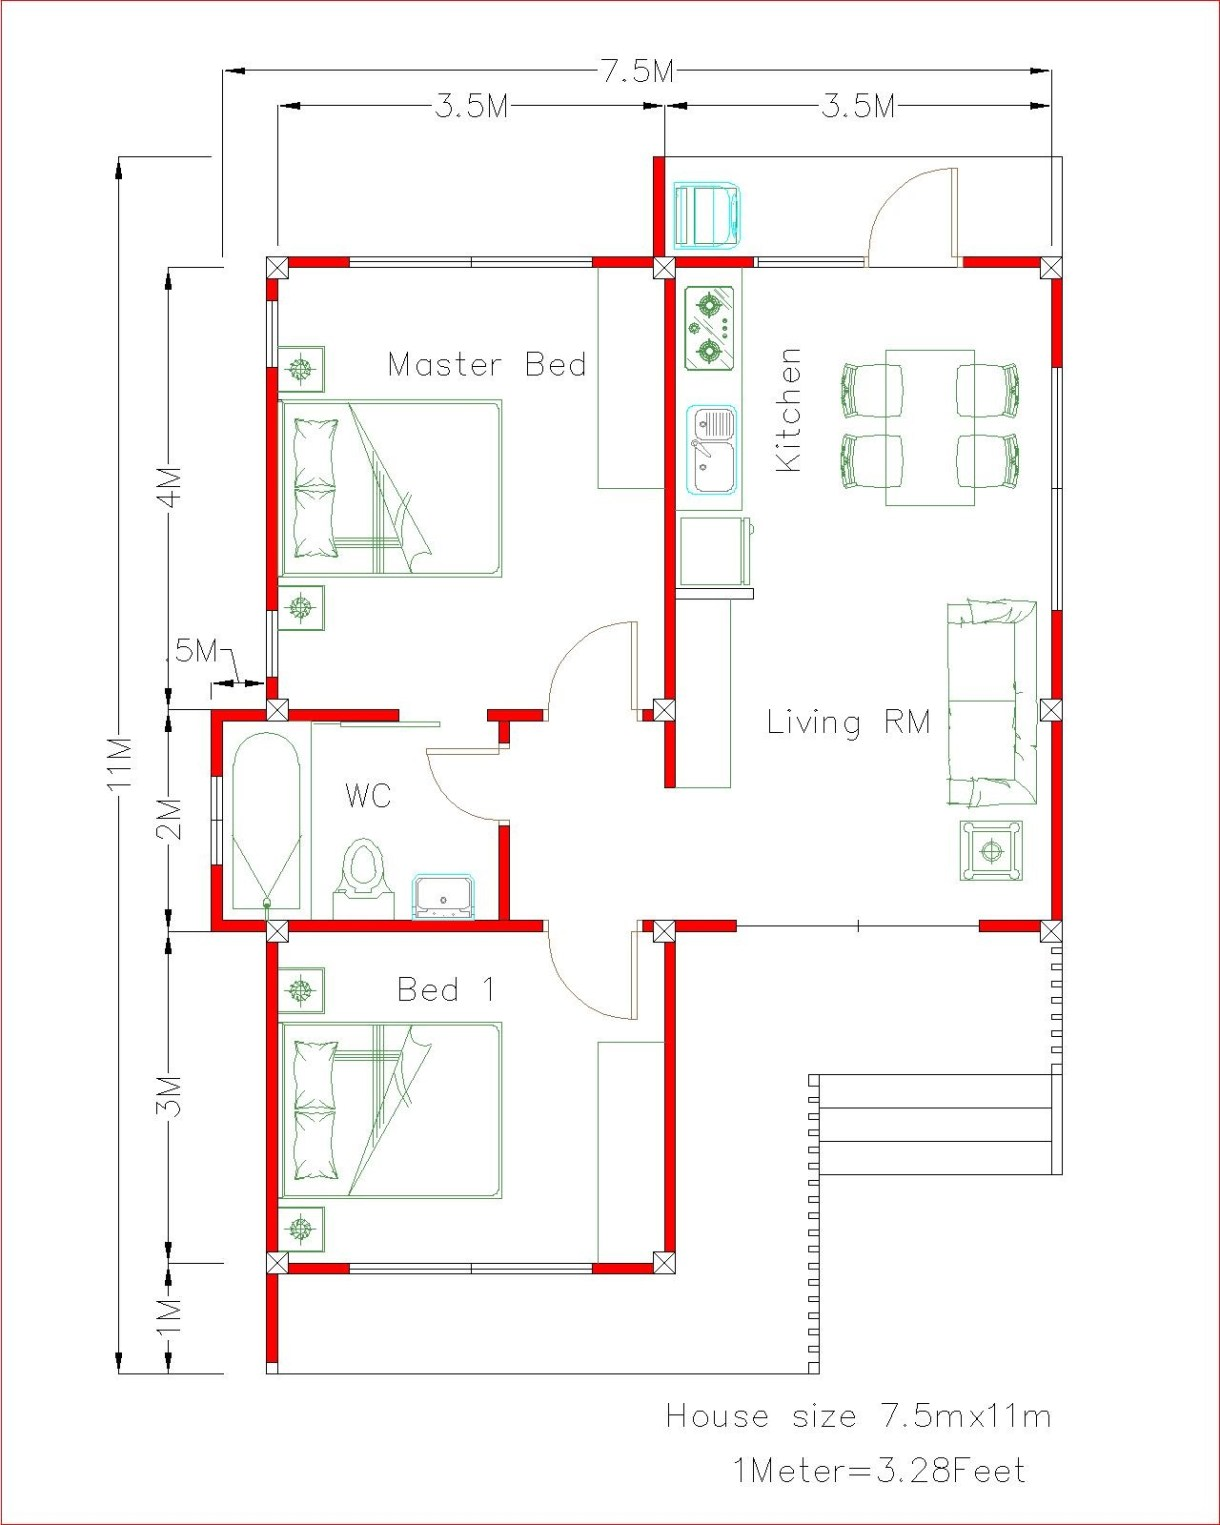 House Design 3d 7.5x11 Meter 25x36 Feet 2 bedrooms Shed Roof